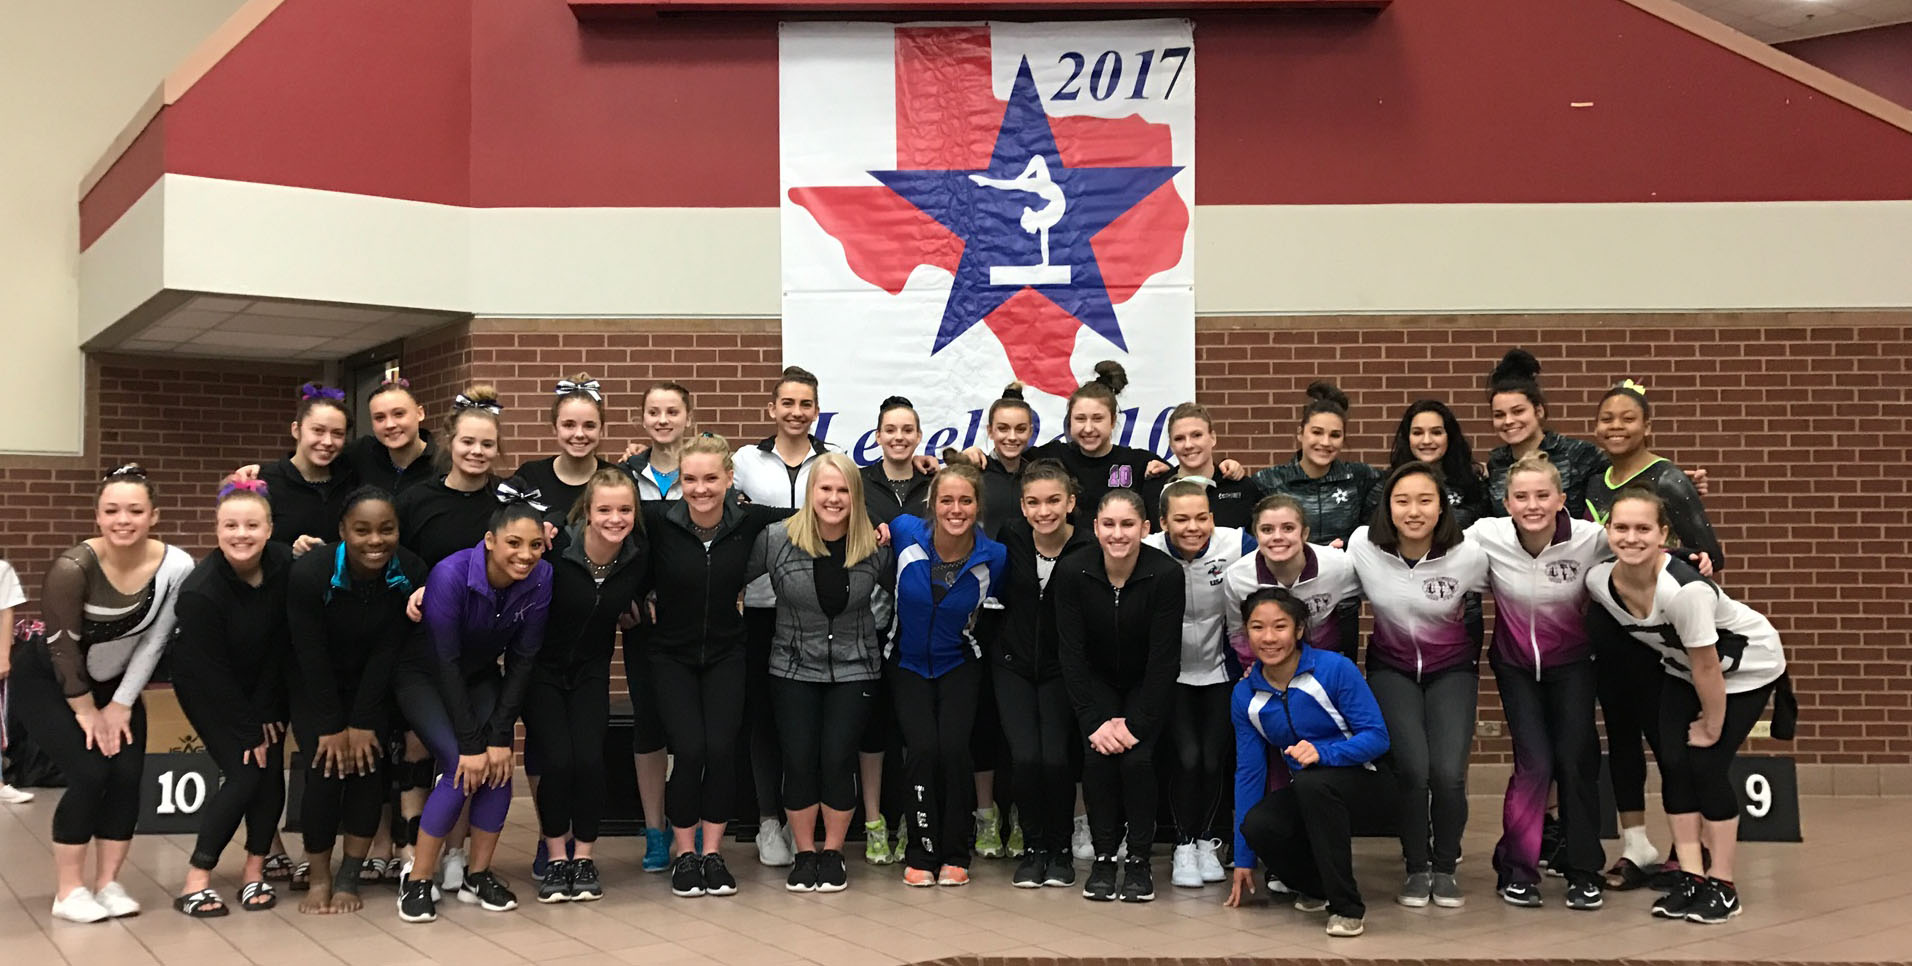 2017 Level 10 Seniors at State.jpg